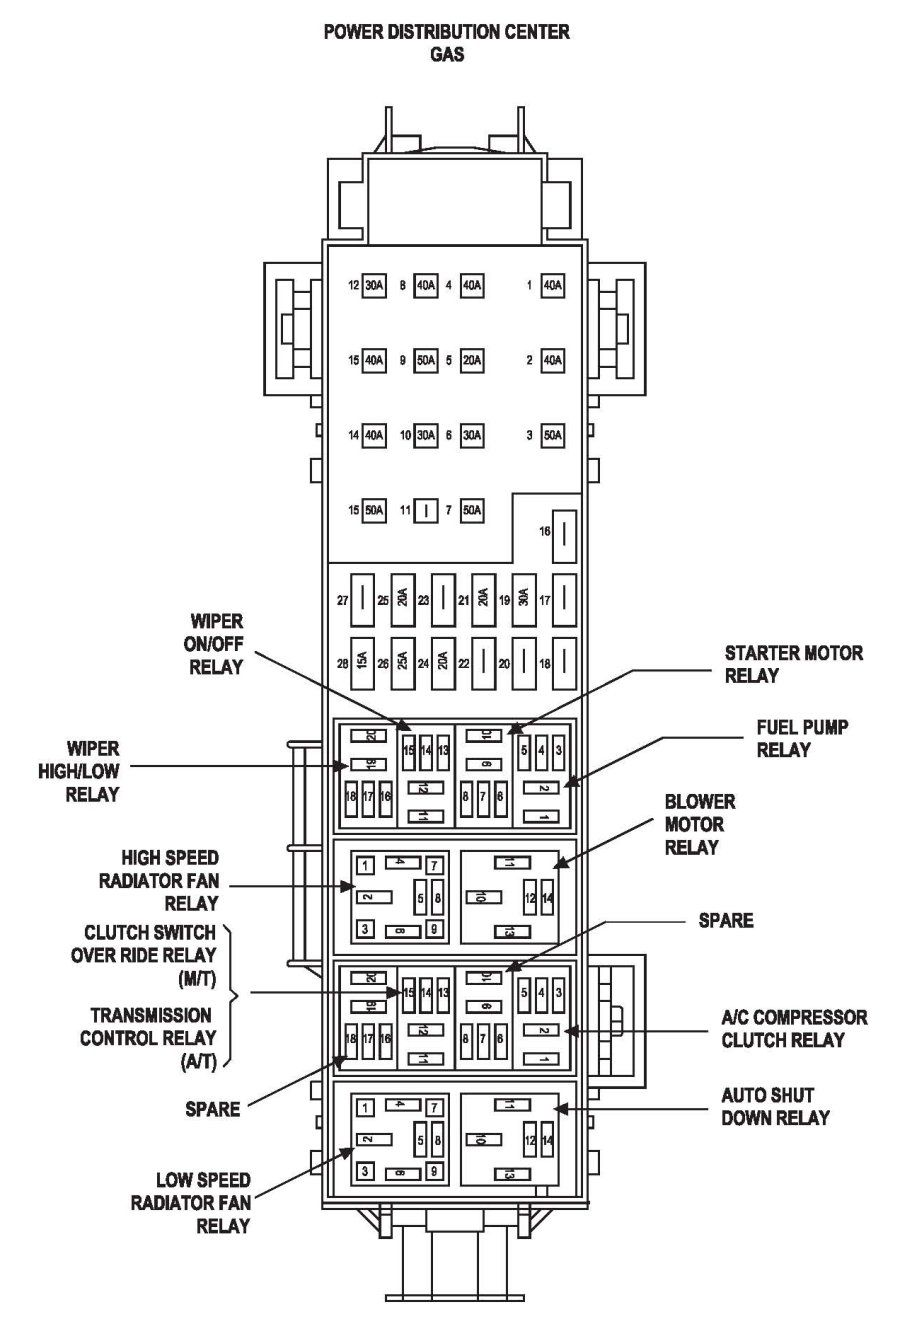 b3536c3739783eb19f827744cc42c3c4 jeep liberty fuse box diagram image details jeep liberty 2005 jeep wrangler fuse box diagram at soozxer.org